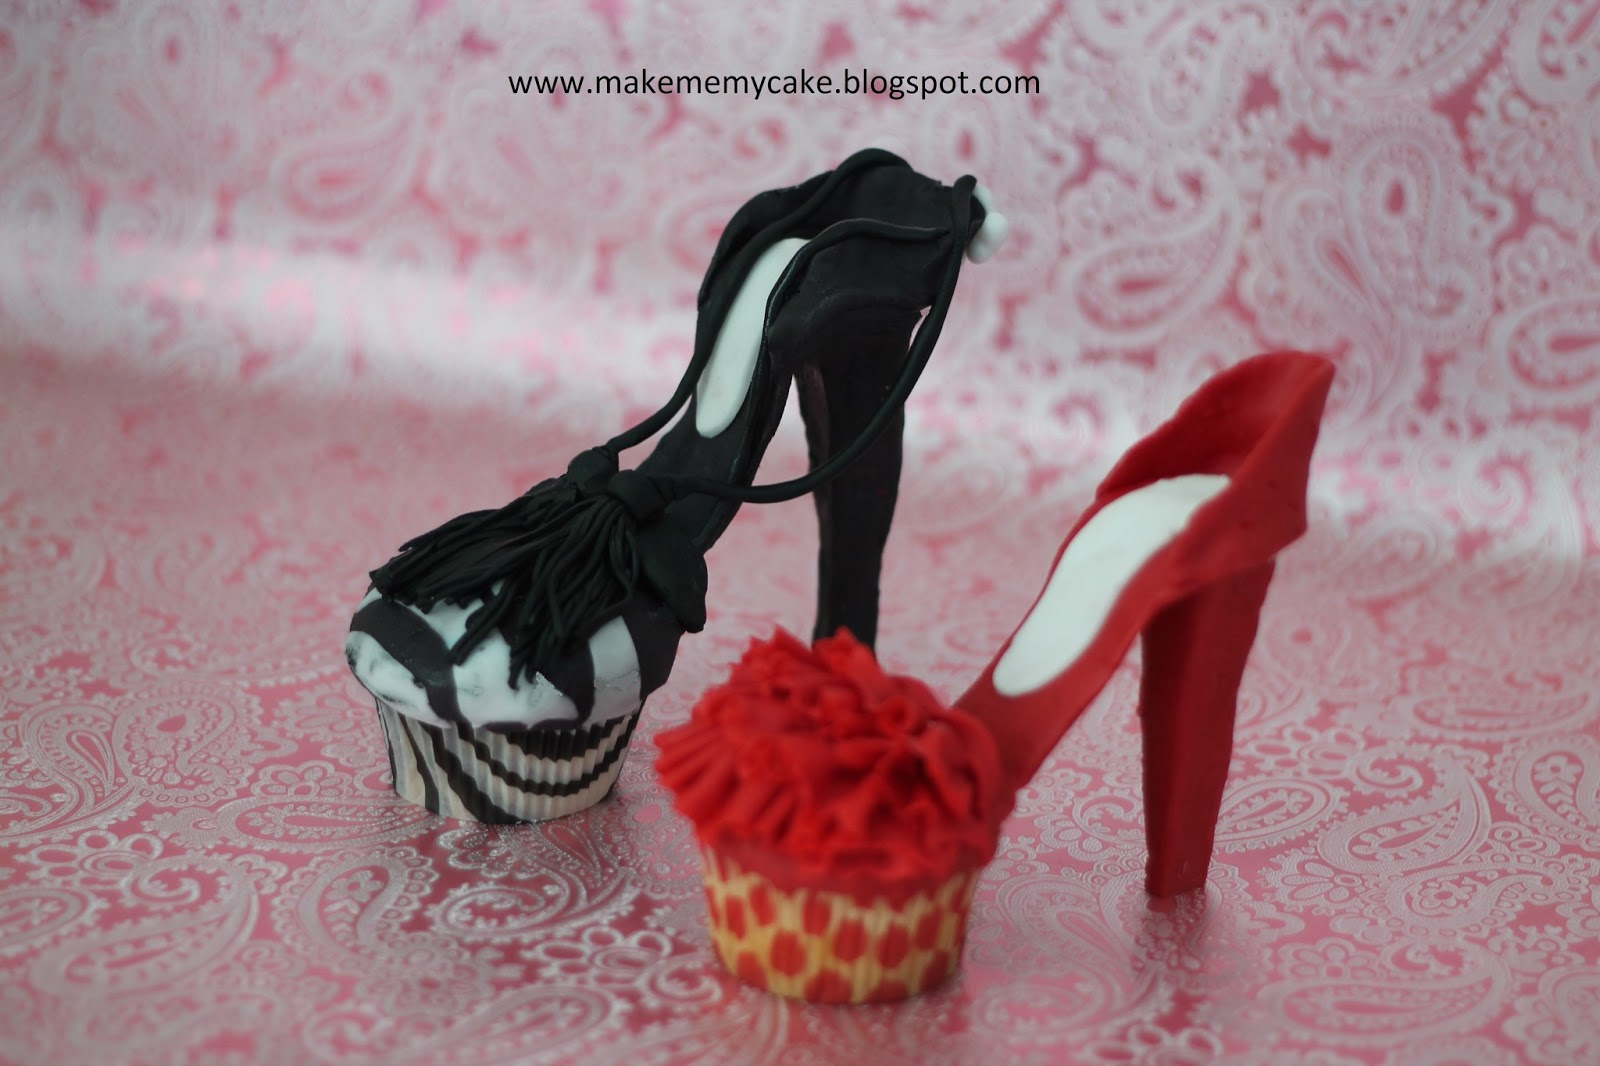 Make Me My Cake: FOR THE LOVE OF SHOES